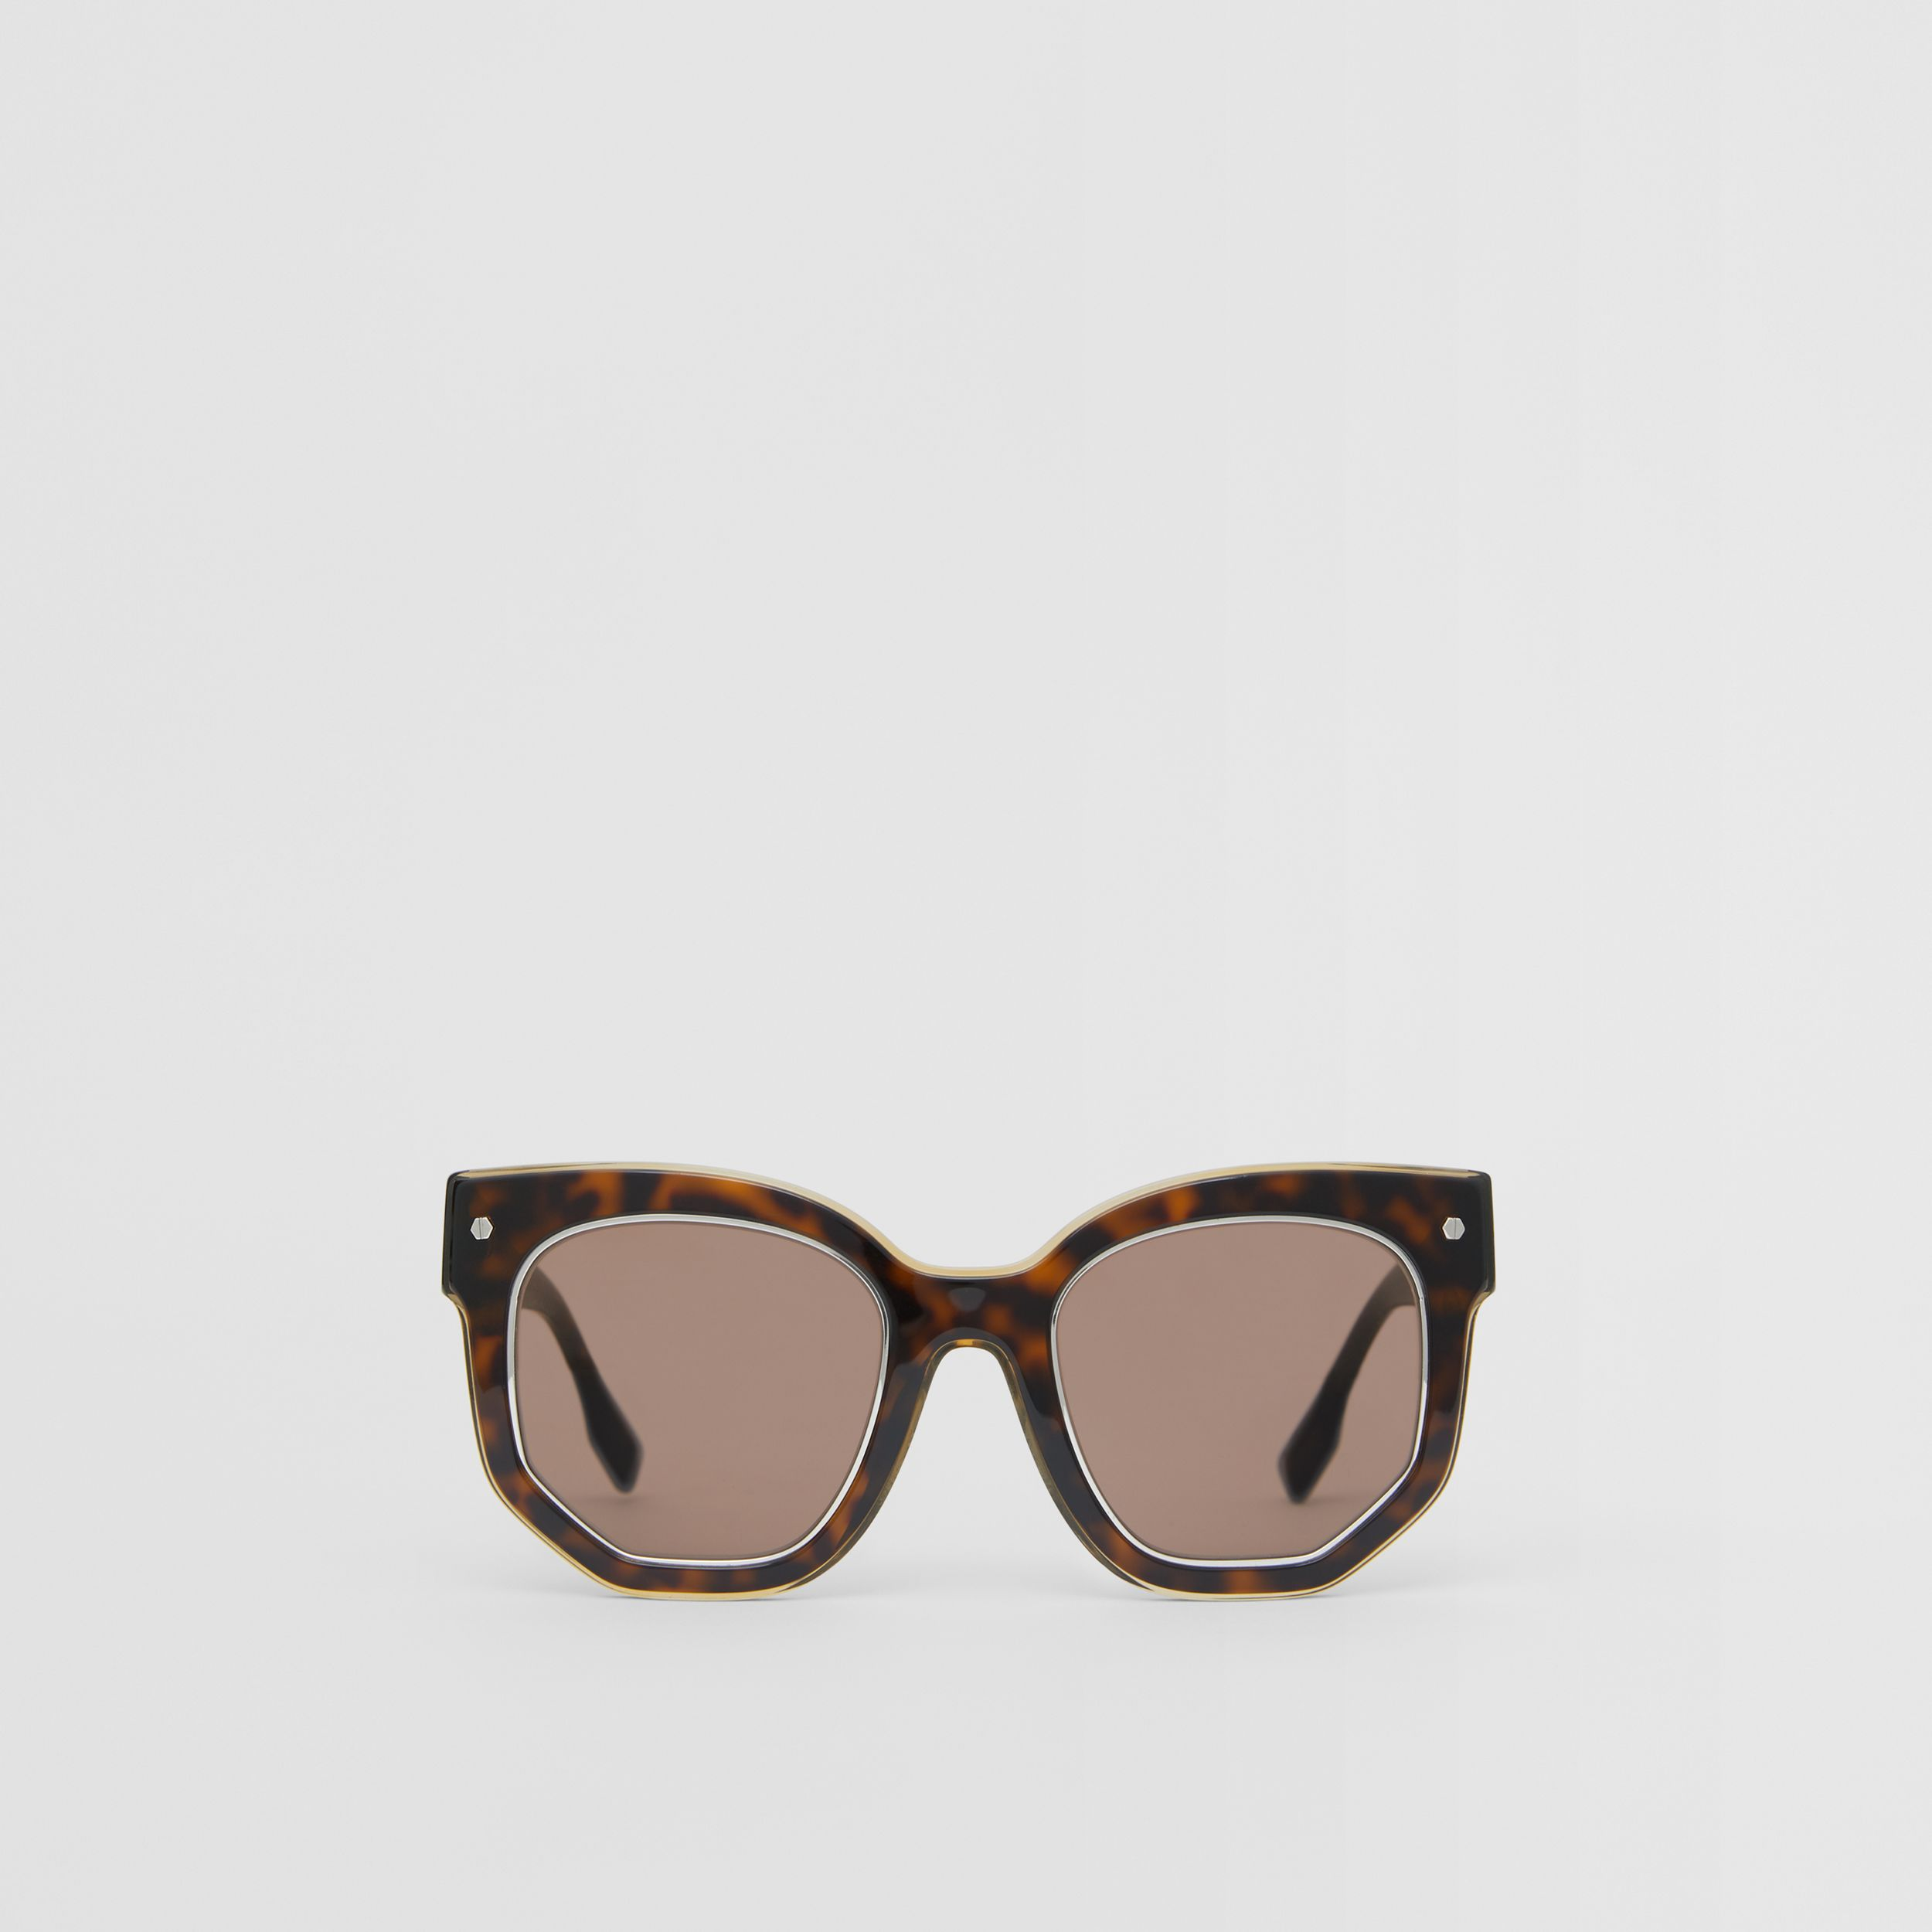 Geometric Frame Sunglasses in Tortoiseshell | Burberry - 1